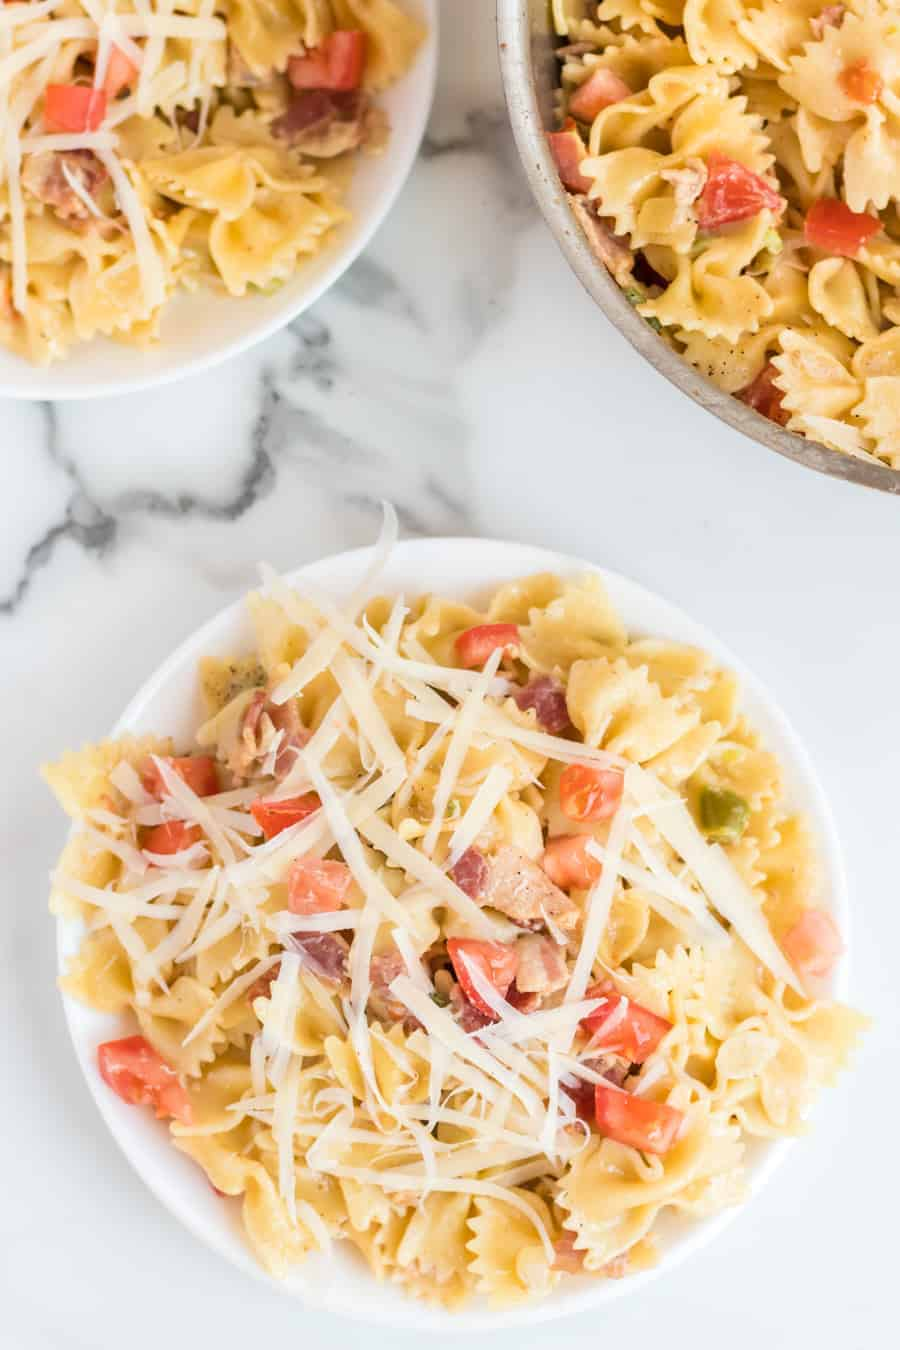 Bowtie pasta in a bowl with chunks of tomato, a light cream sauce, and shredded Parmesan cheese on top.